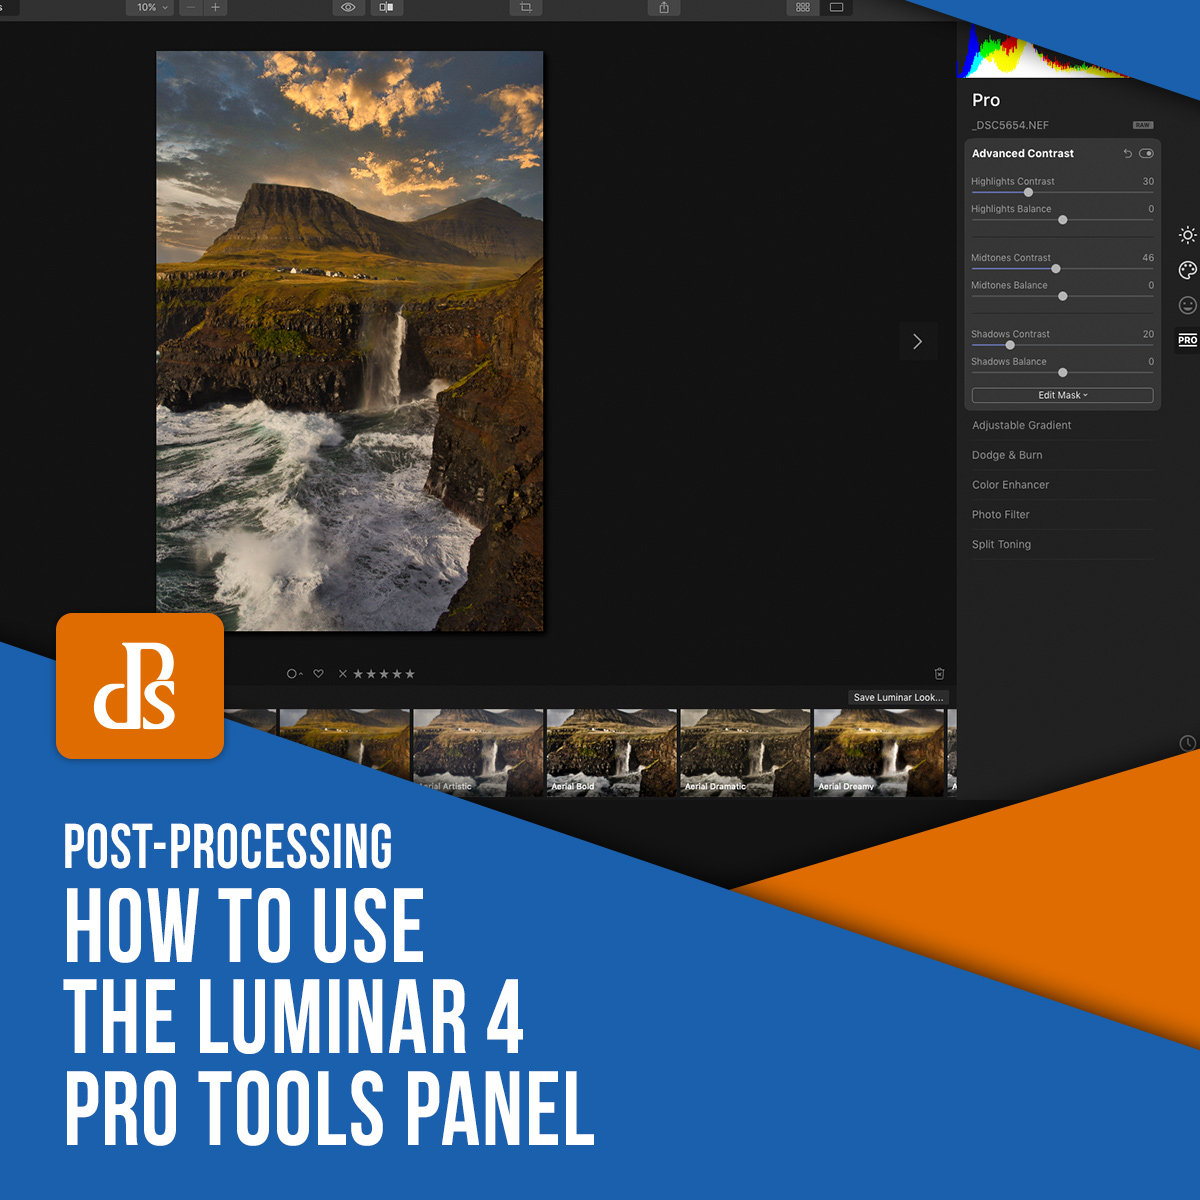 https://i1.wp.com/digital-photography-school.com/wp-content/uploads/2020/03/dps-luminar-4-pro-tools-panel.jpg?ssl=1